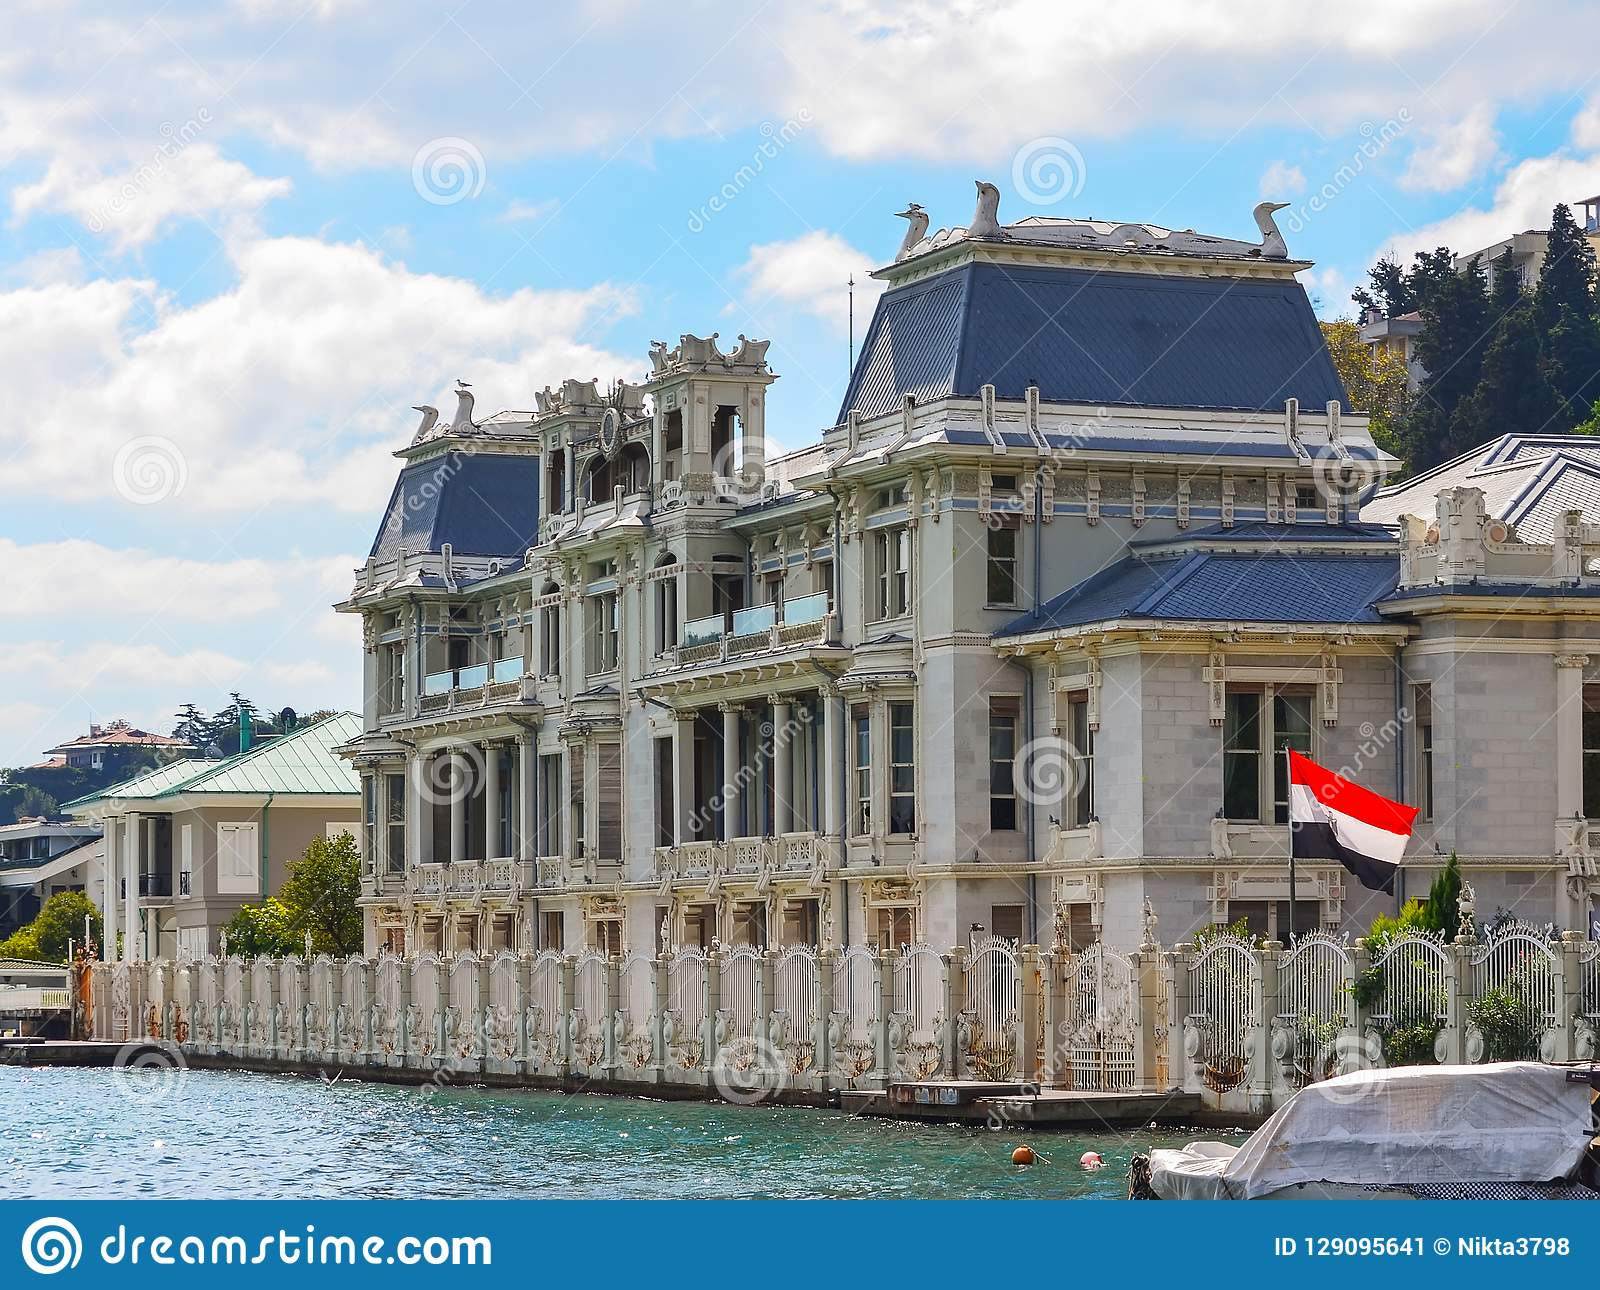 Istanbul, Turkey - September 21, 2018. The consulate of Egypt in Istanbul. Art Nouveau villa on the shores of the Bosphorus with t